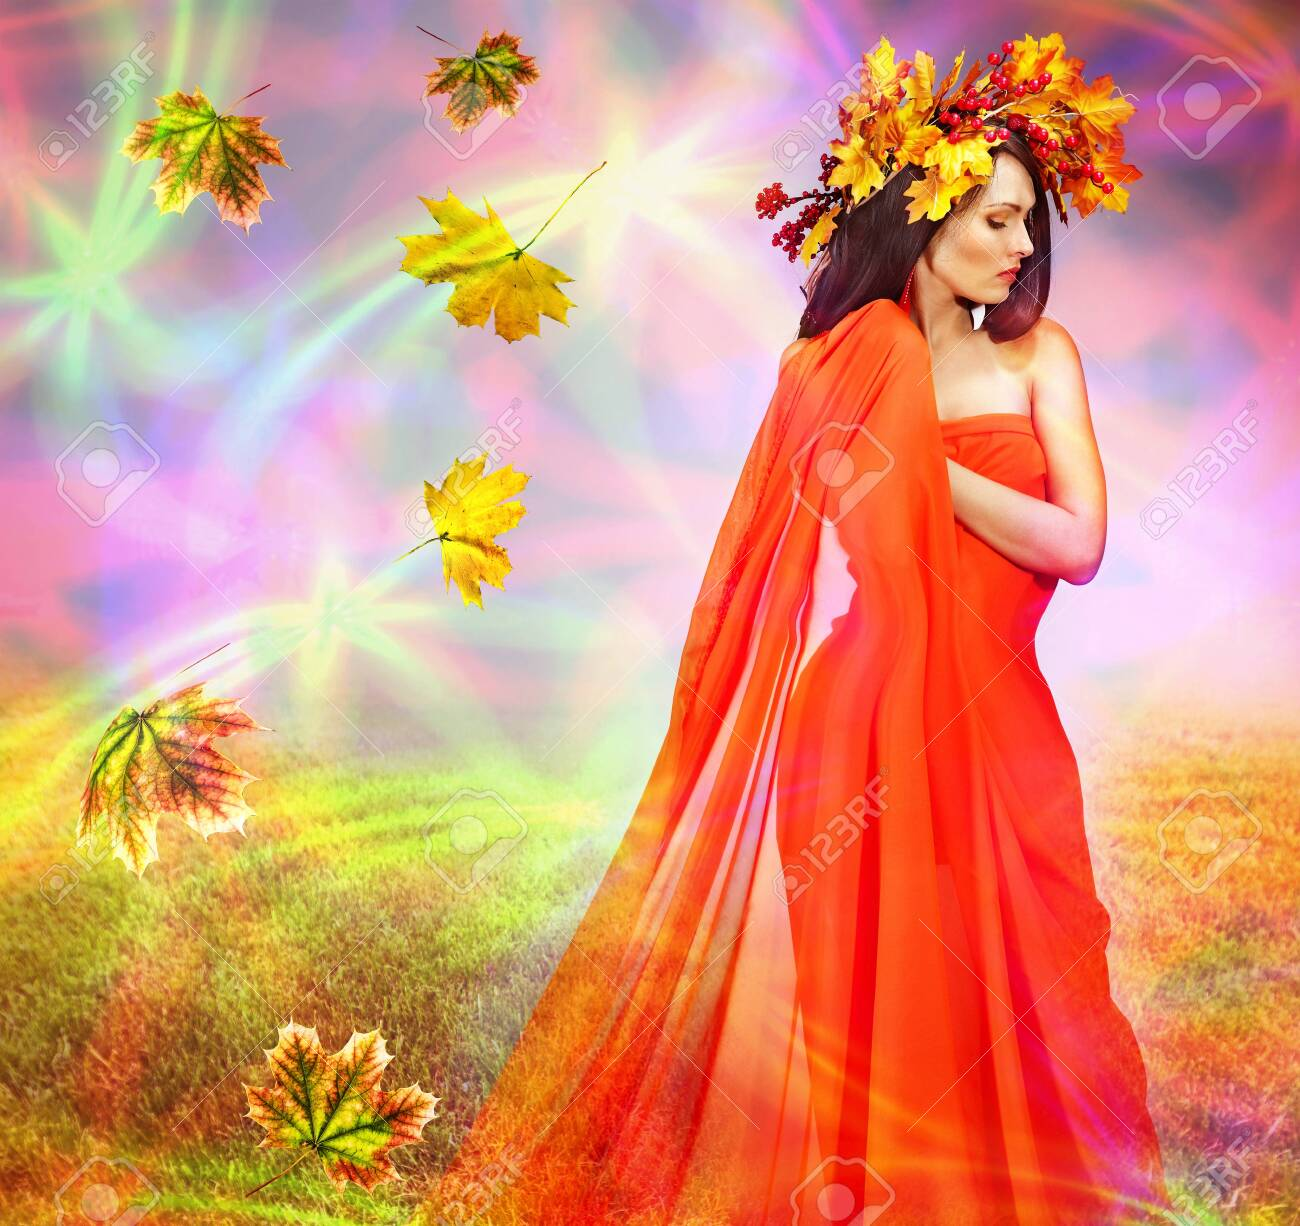 Autumn leaves background with woman. Conceptual fall fashion dream in red fall color of september sun. - 156541257